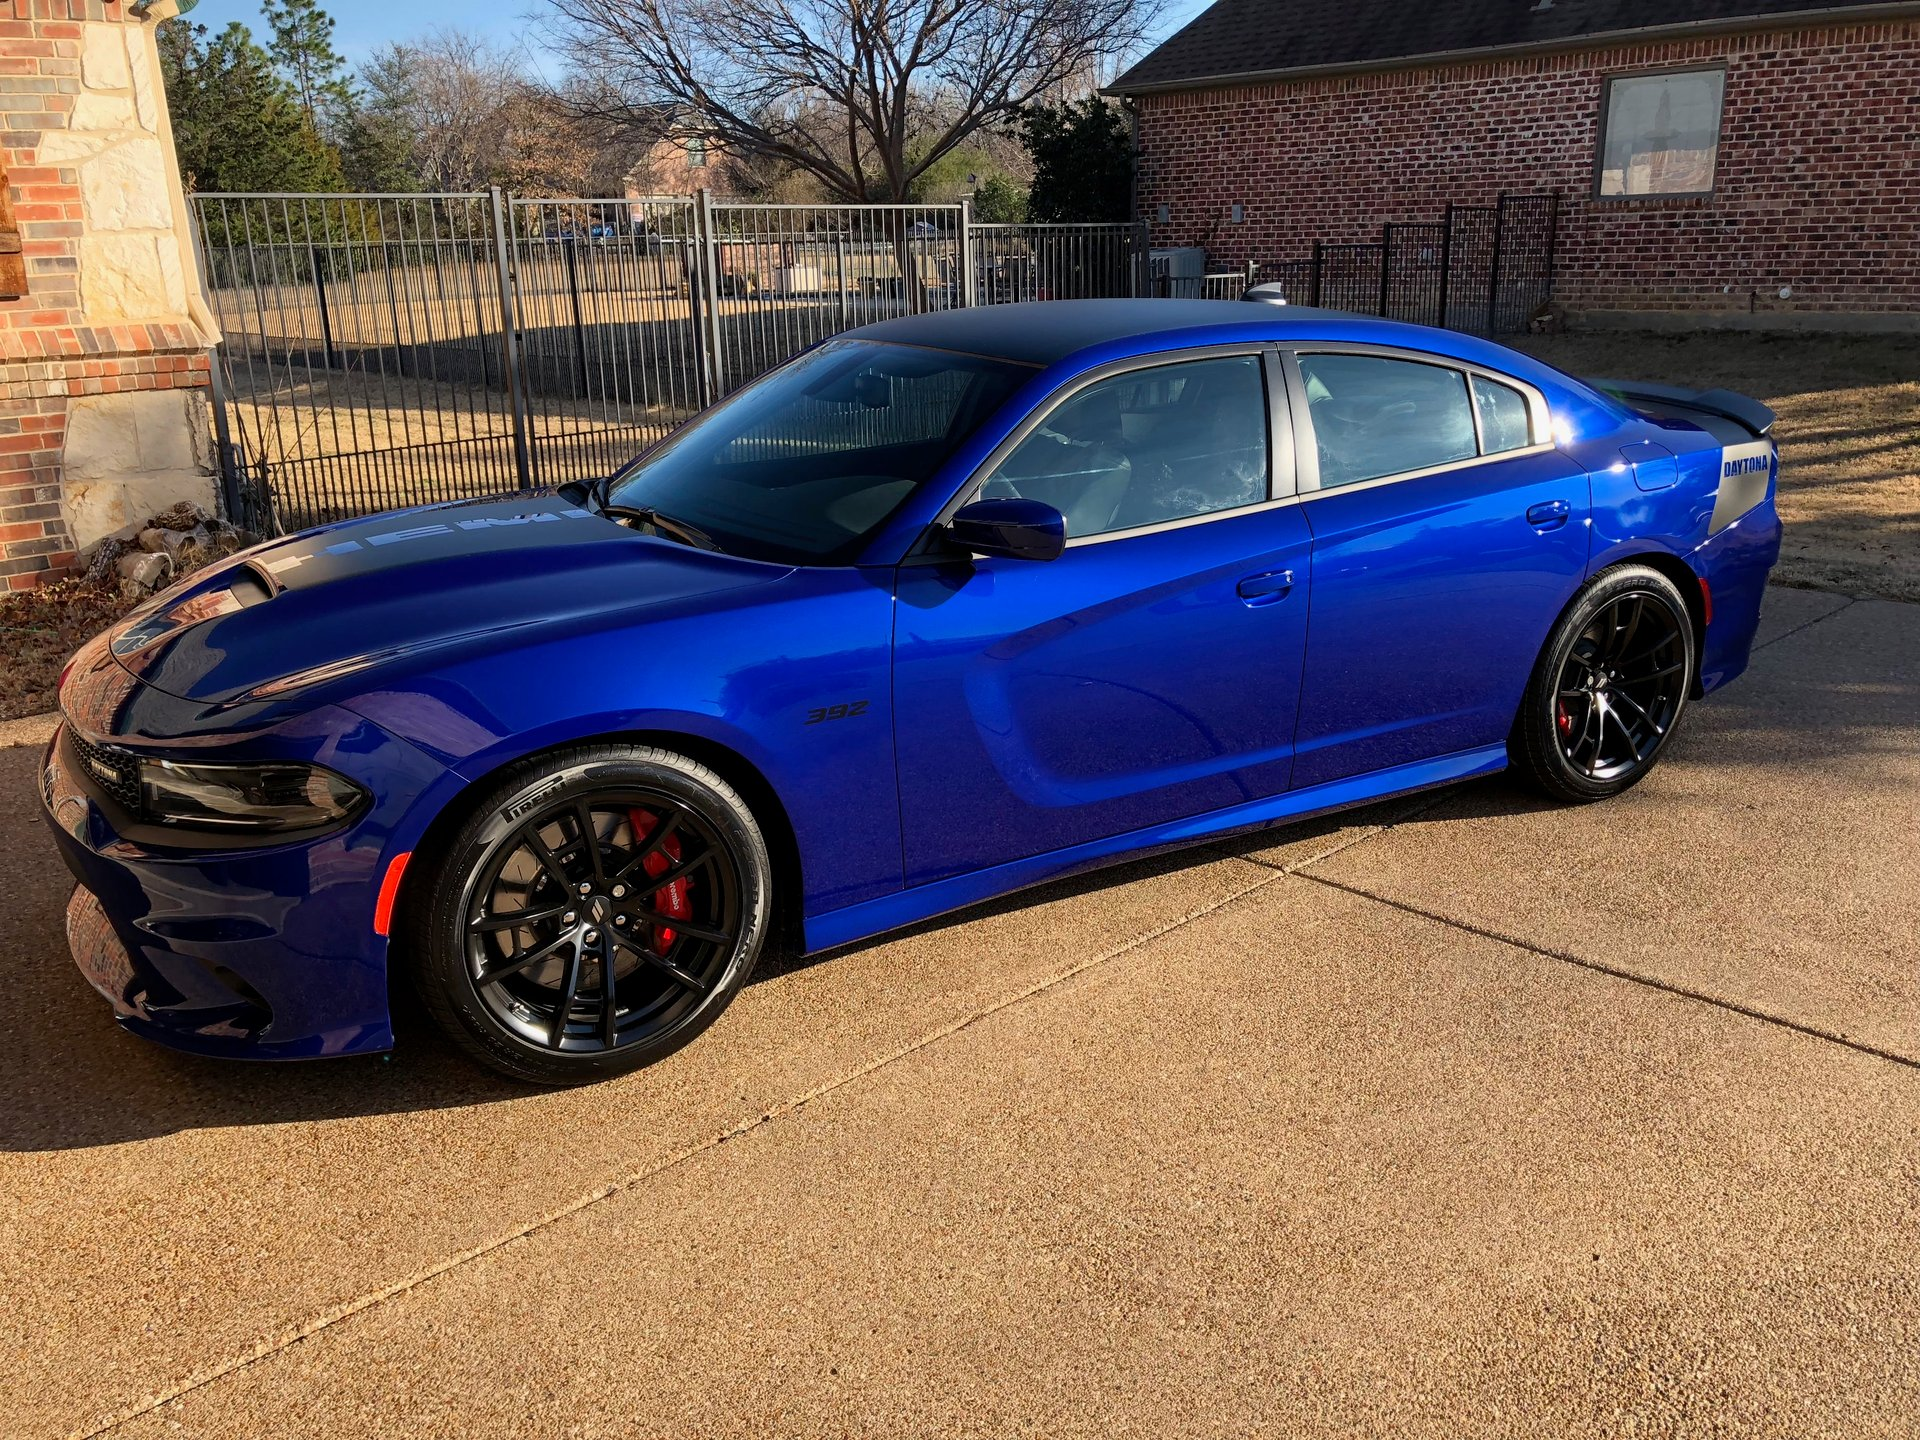 Blue Dodge Charger >> 2018 Daytona 392 Charger Indigo Blue Charger Forums